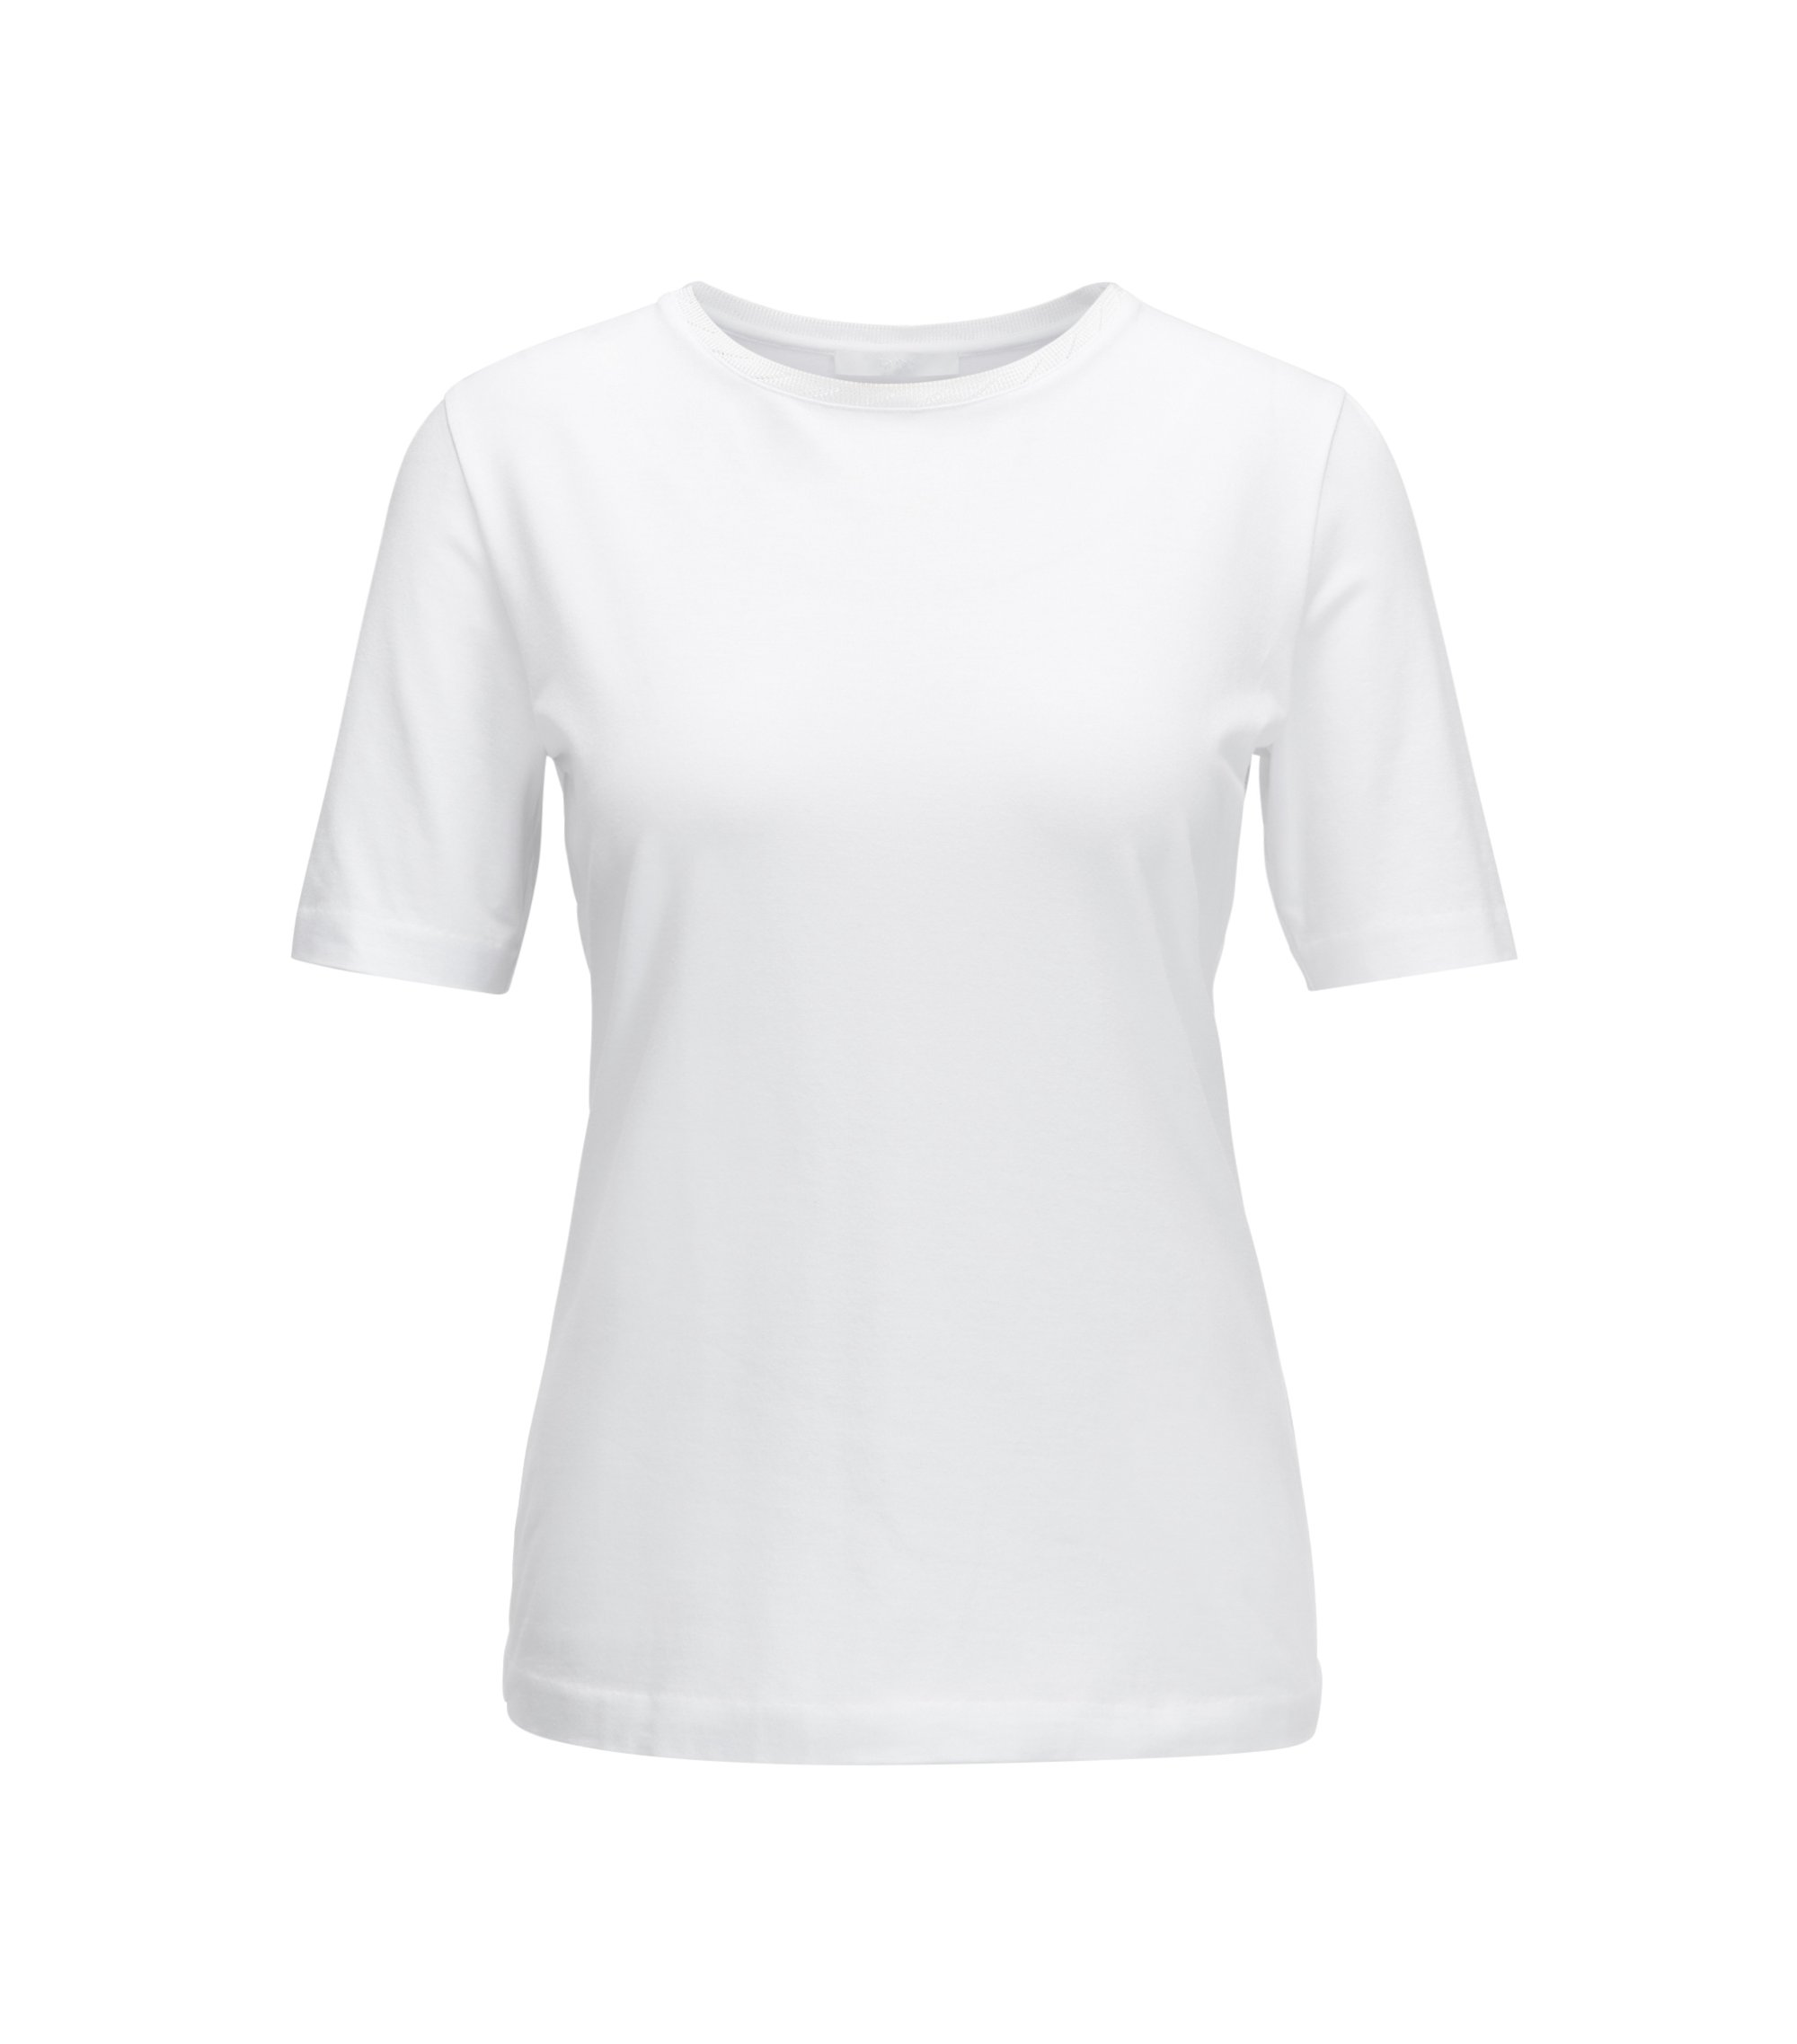 Top met ronde hals, van jersey met stretch, Naturel